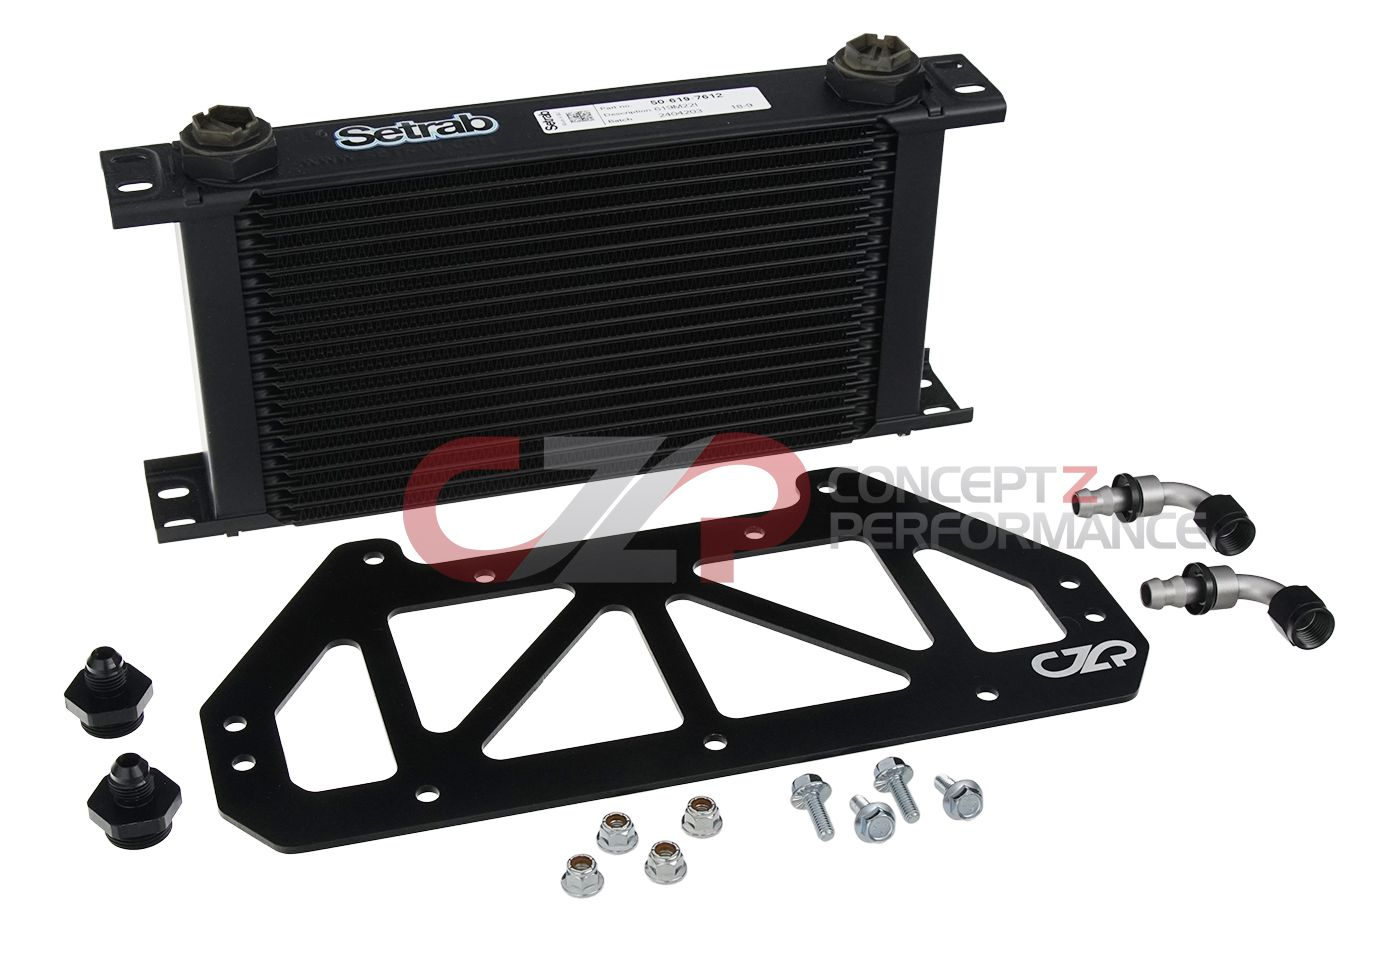 CZP Oil Cooler Upgrade Kit w/ Setrab Oil Cooler - Nissan 300ZX Twin Turbo TT Z32